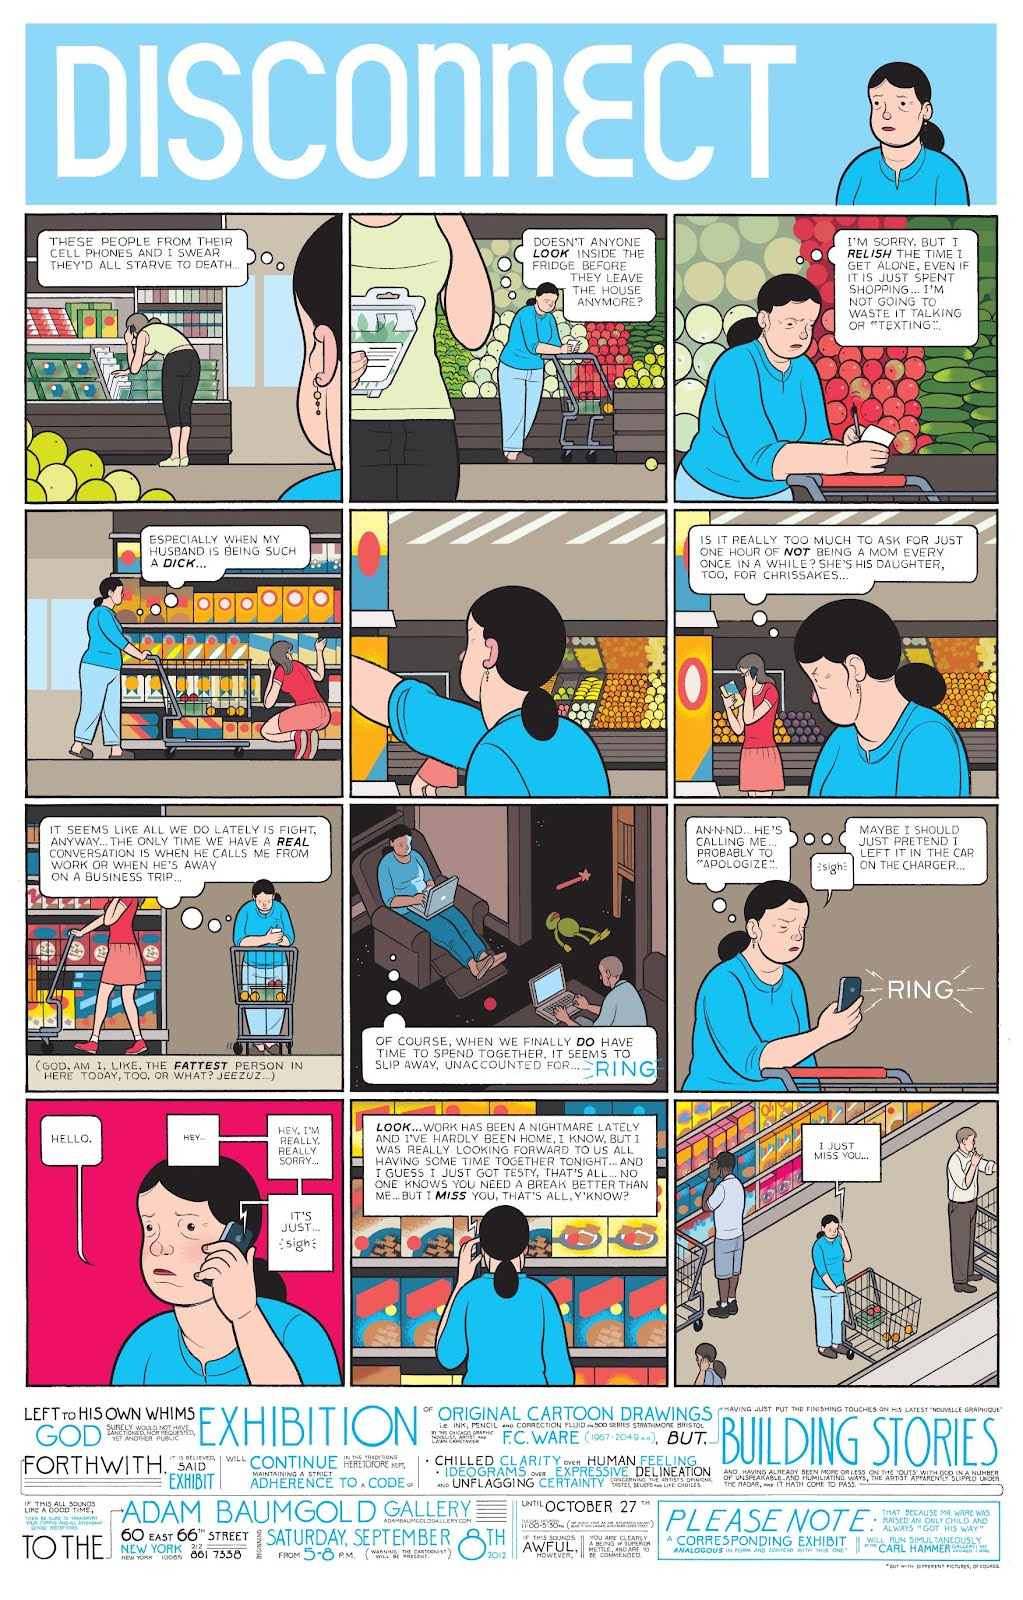 chris ware disconnect